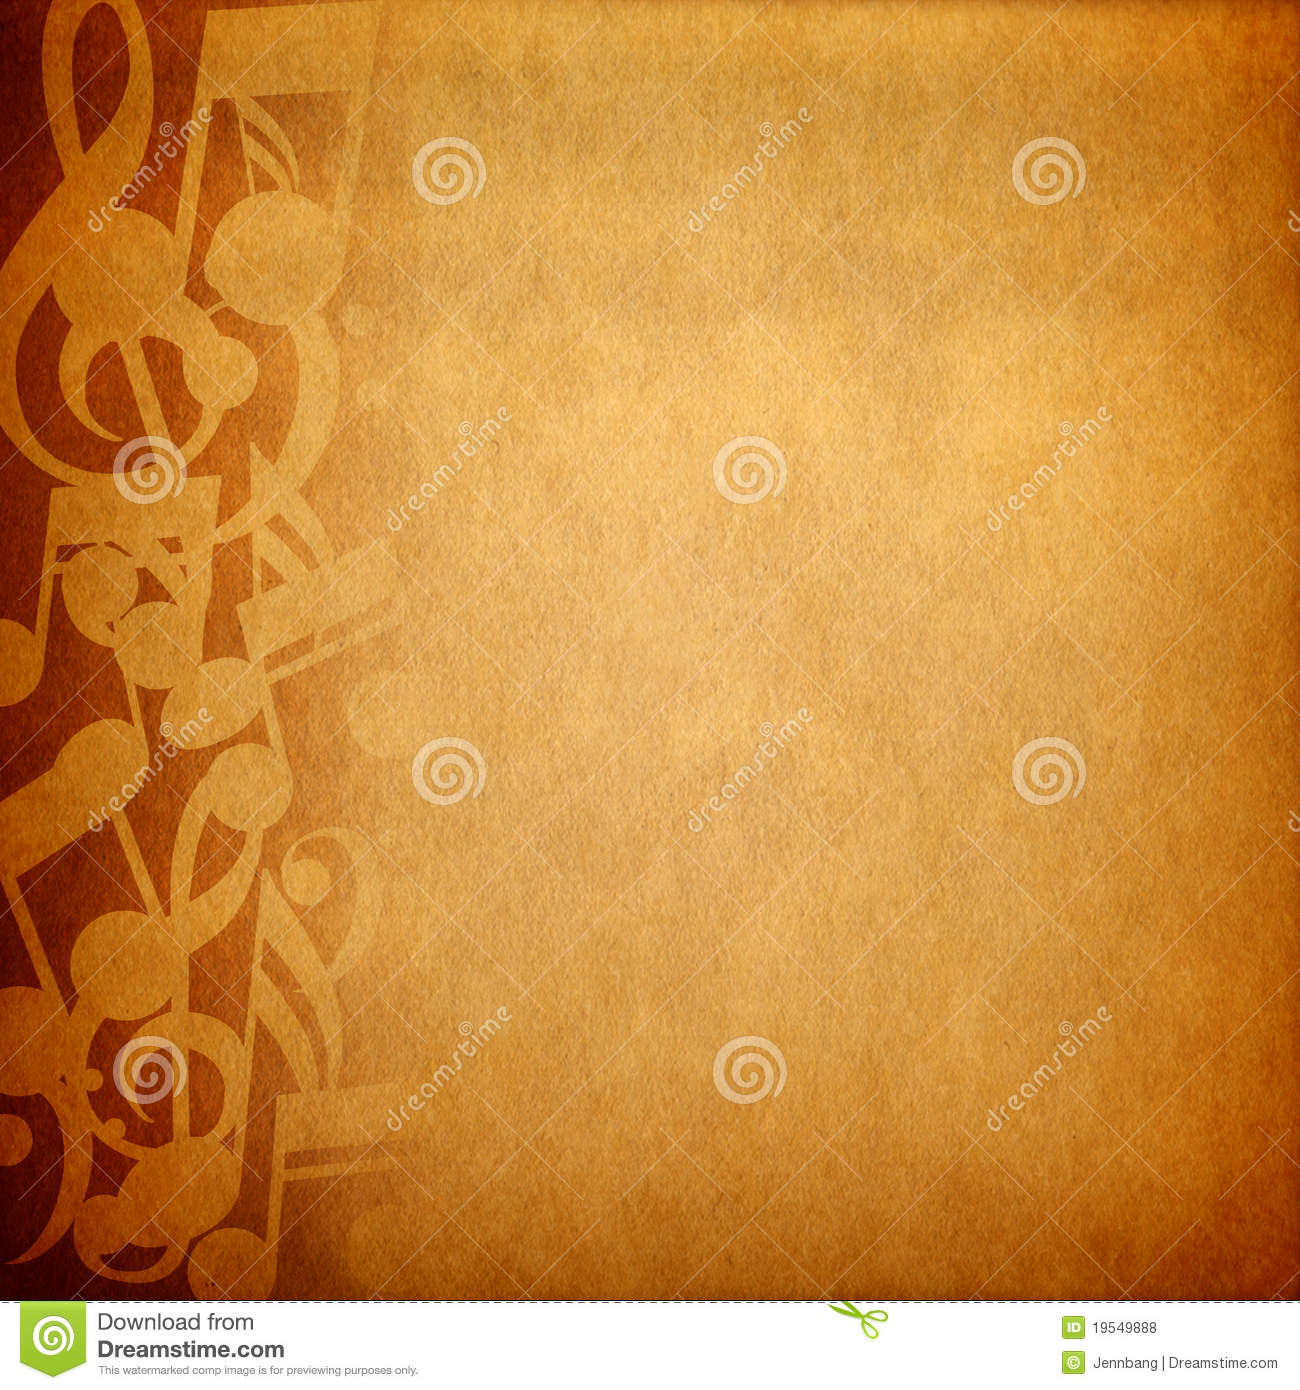 Music note background stock photo Image of abstract 19549888